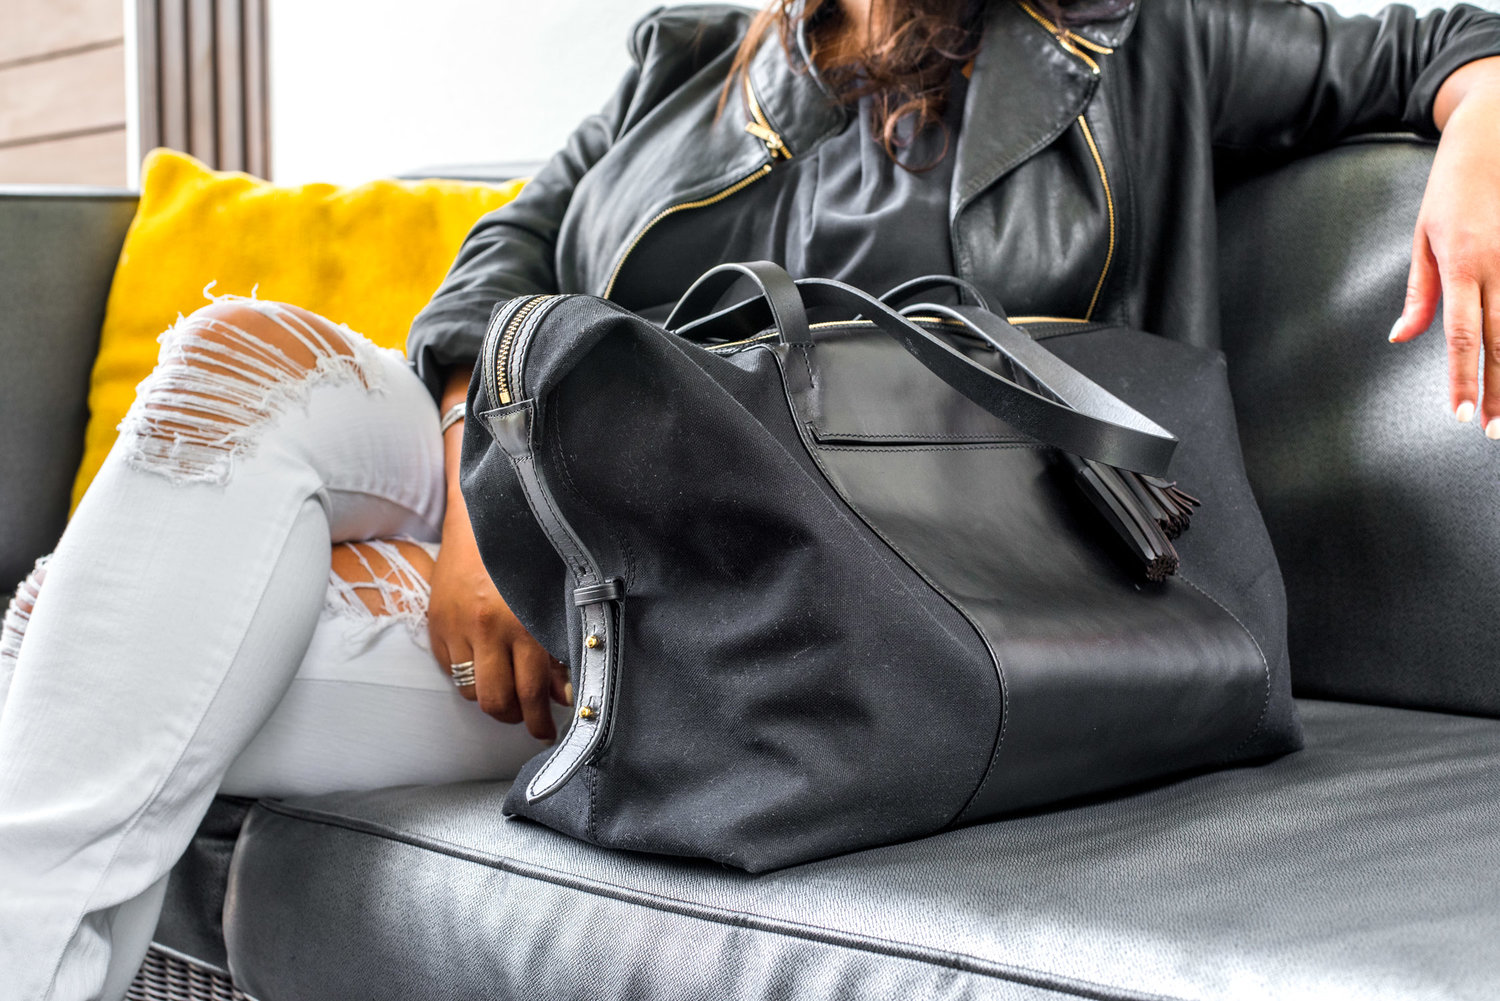 Cuyana: The Perfect Bag and Wallet for Traveling